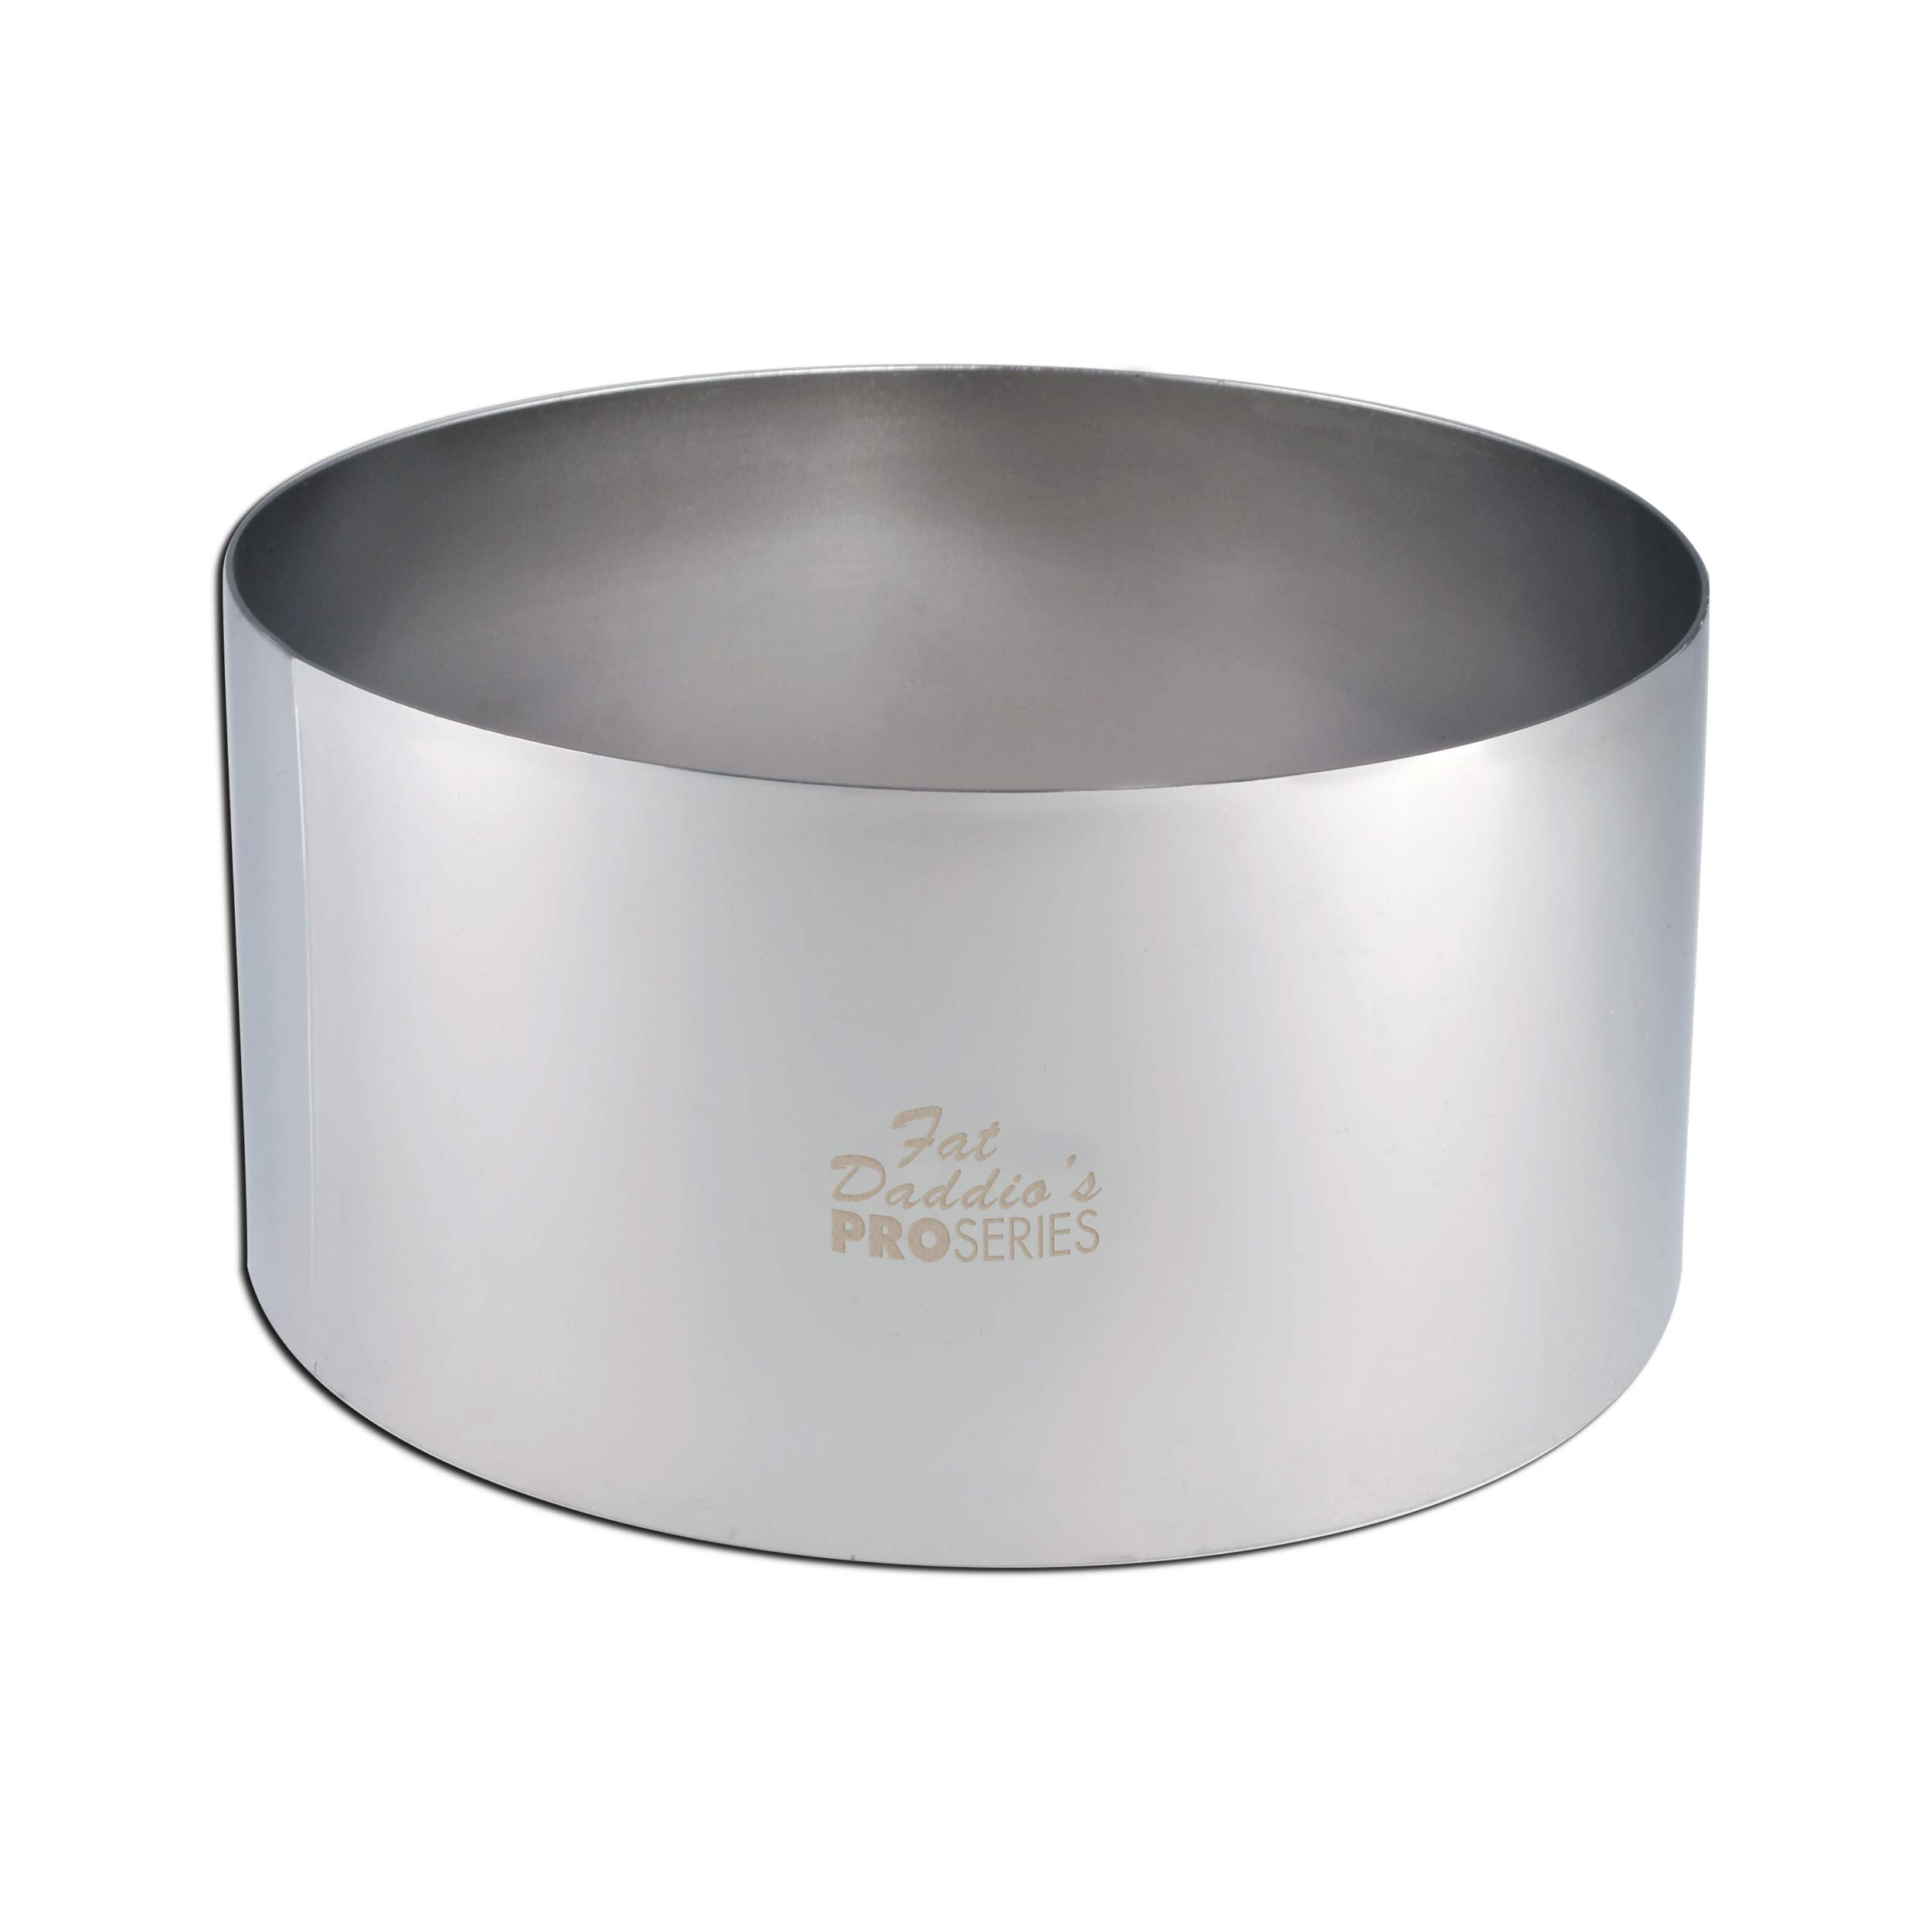 Fat Daddio's Stainless Steel Round Cake & Pastry Ring, 6 x 3 Inch by Fat Daddios (Image #2)